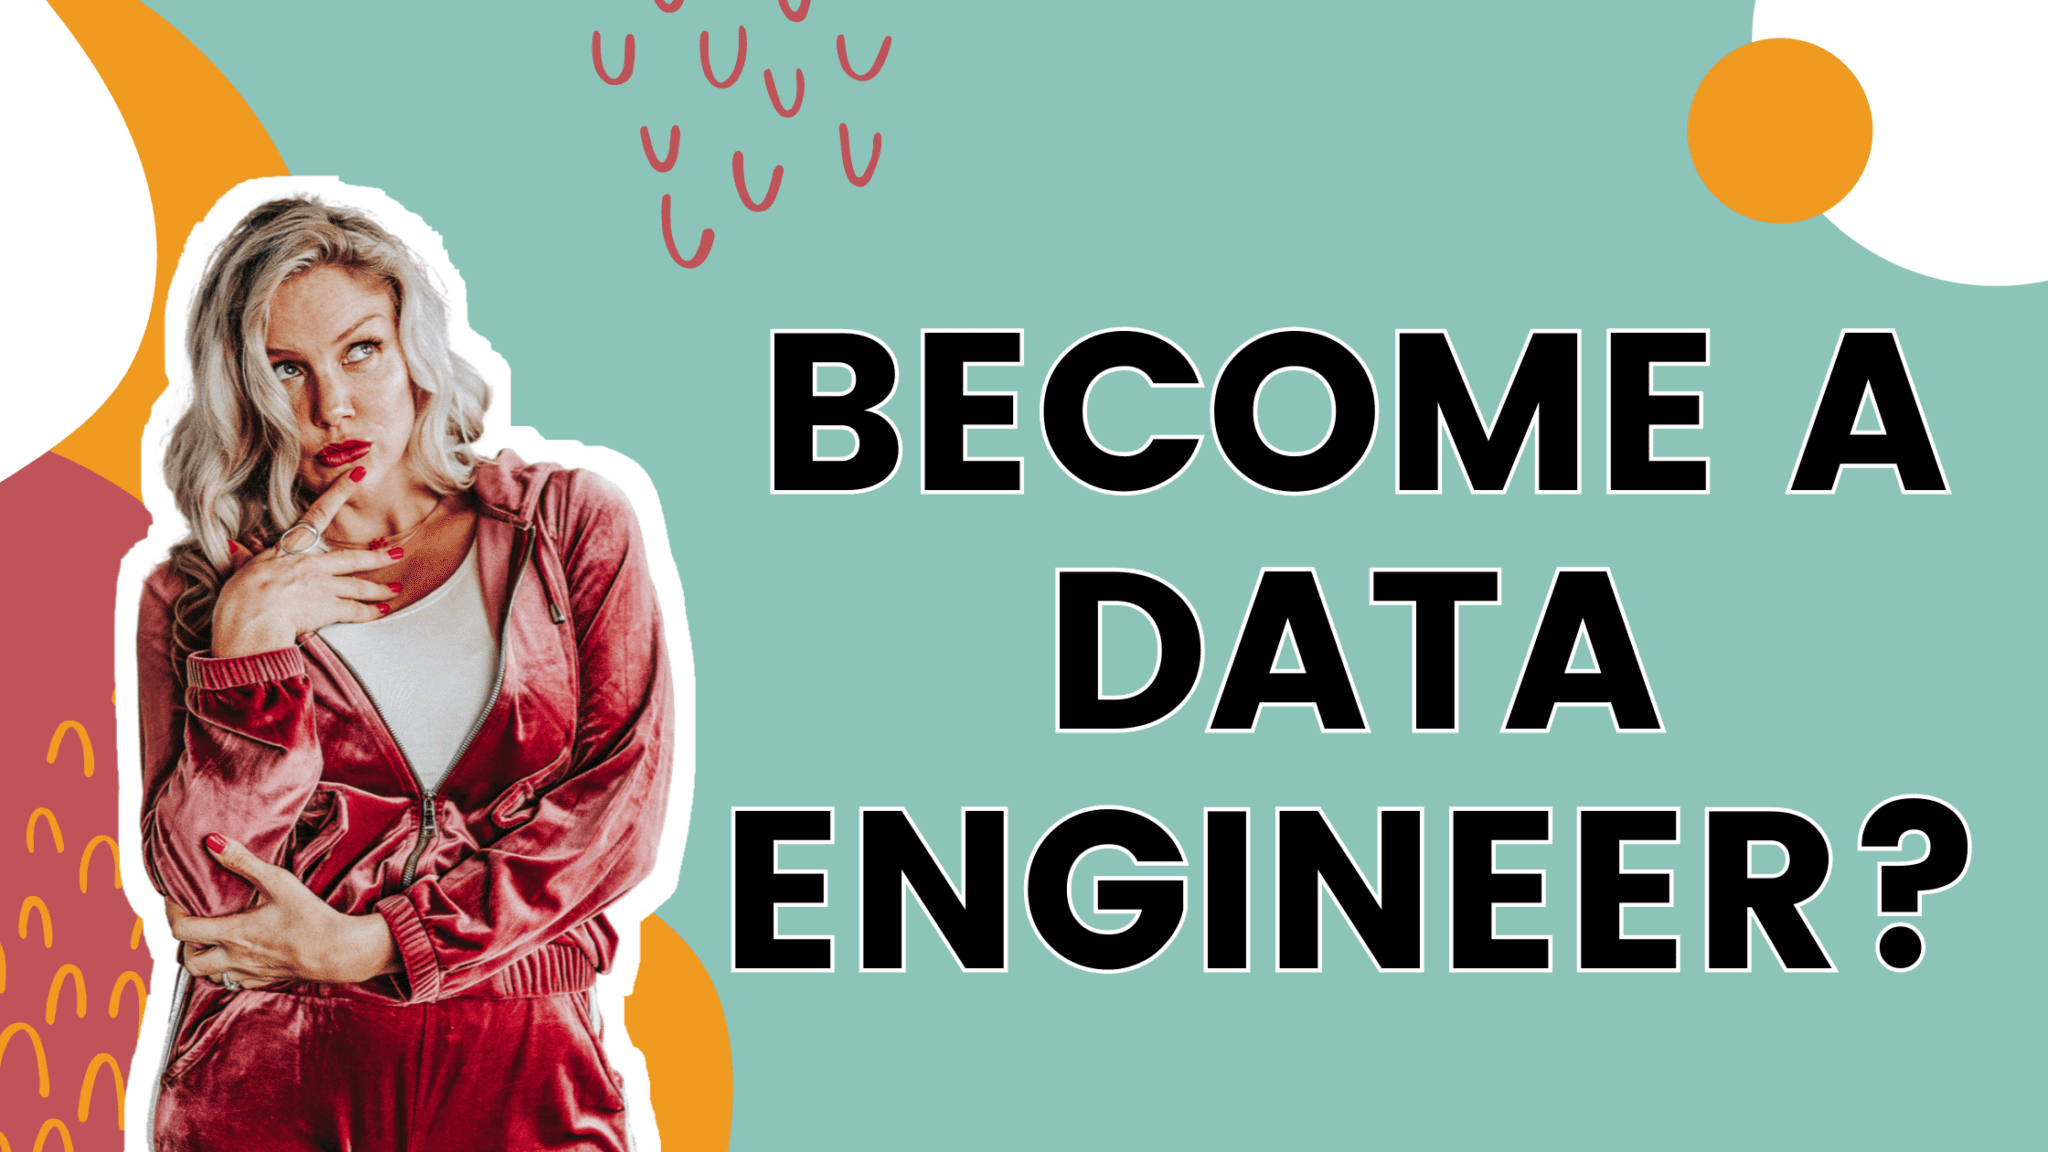 Here is how to become a Data Engineer